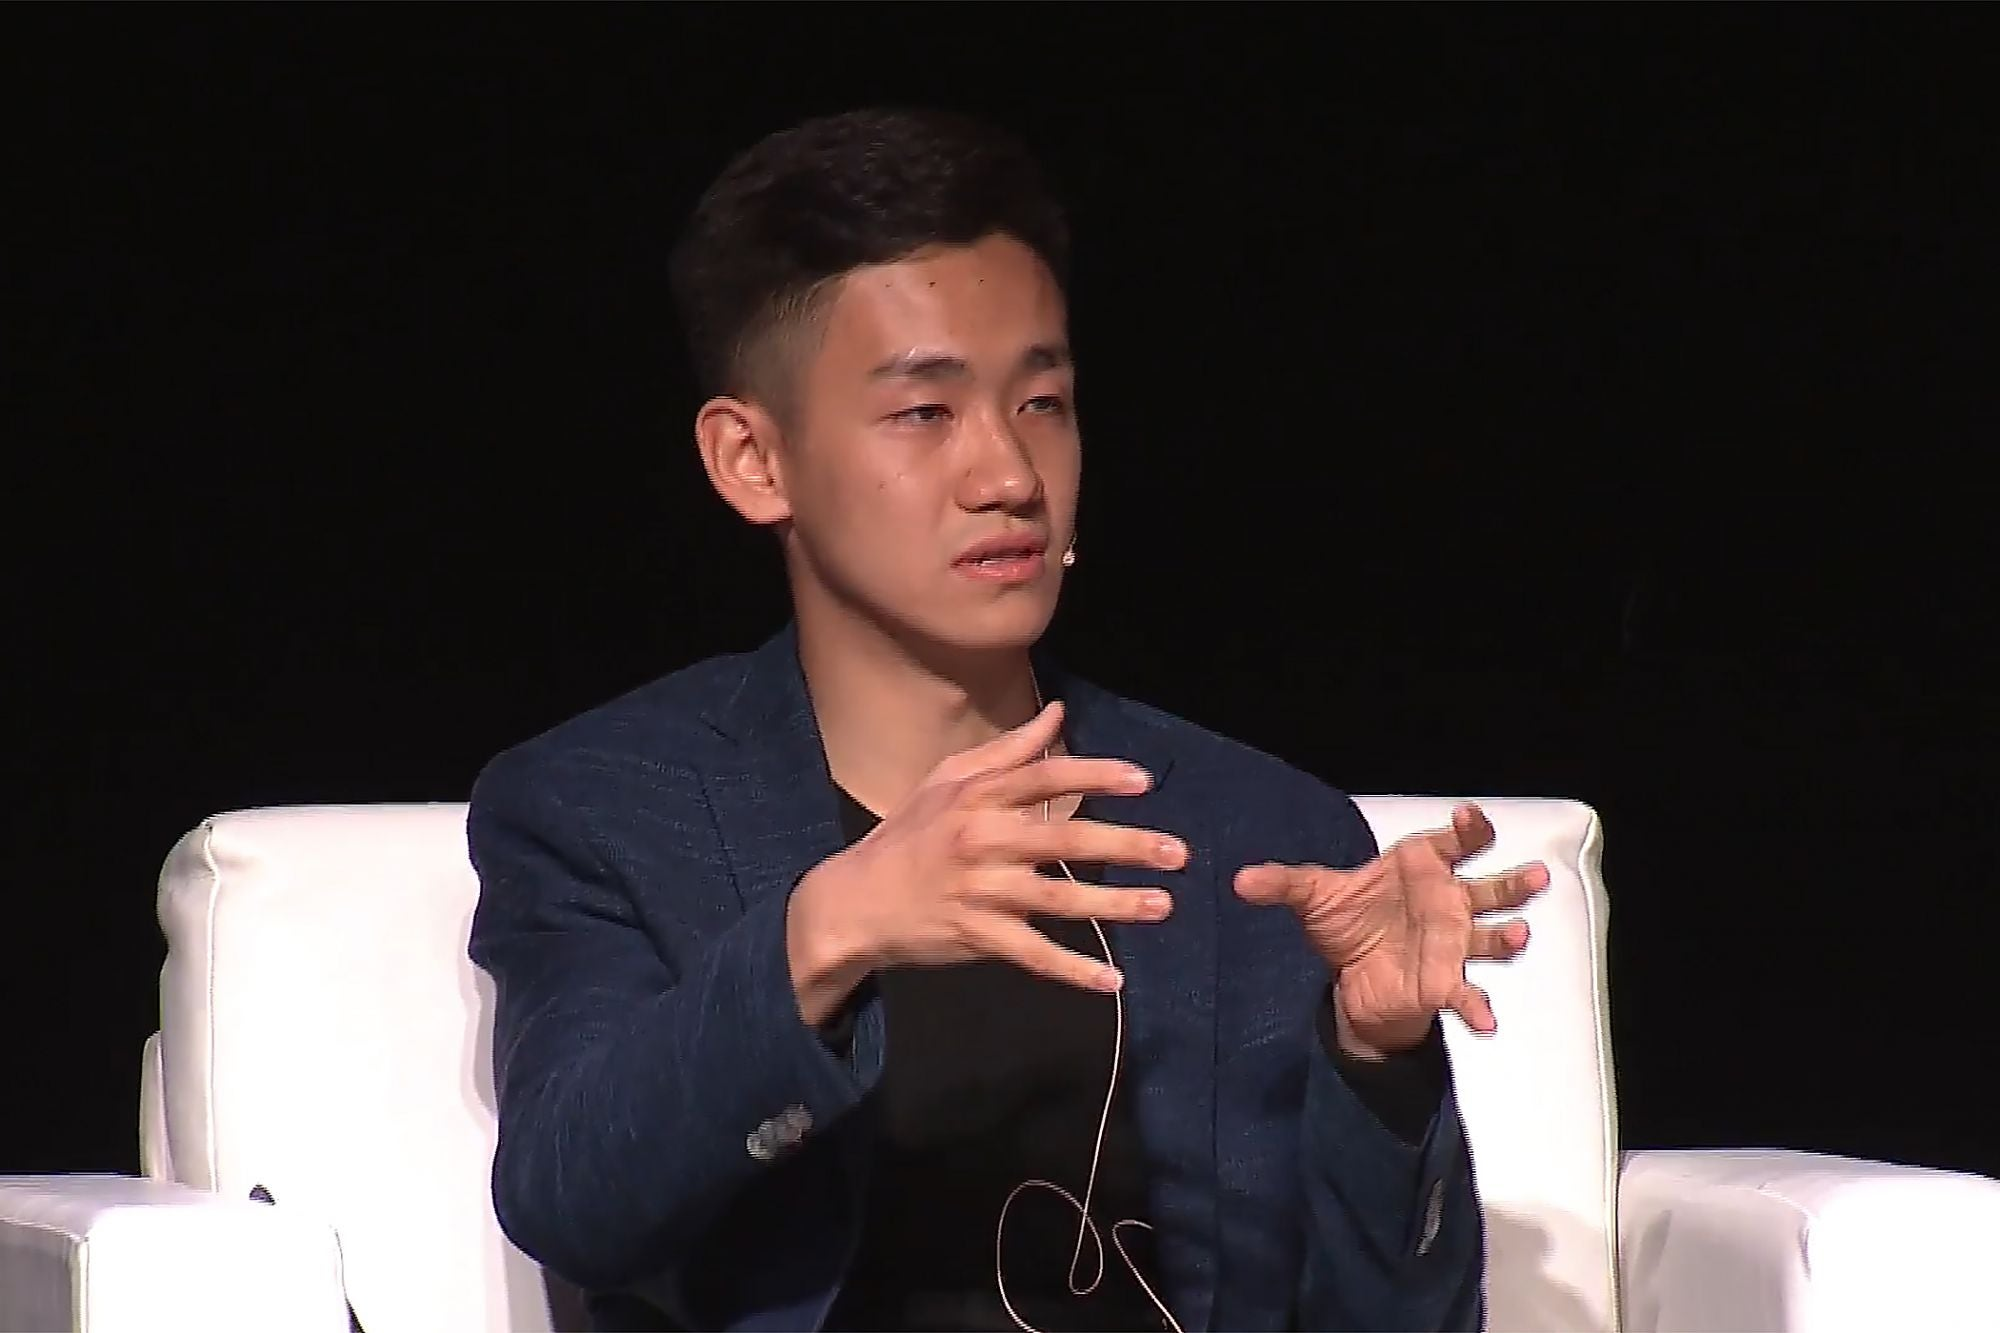 What You Can Learn From This 21-Year-Old VC Who Started A $60 Million Fund